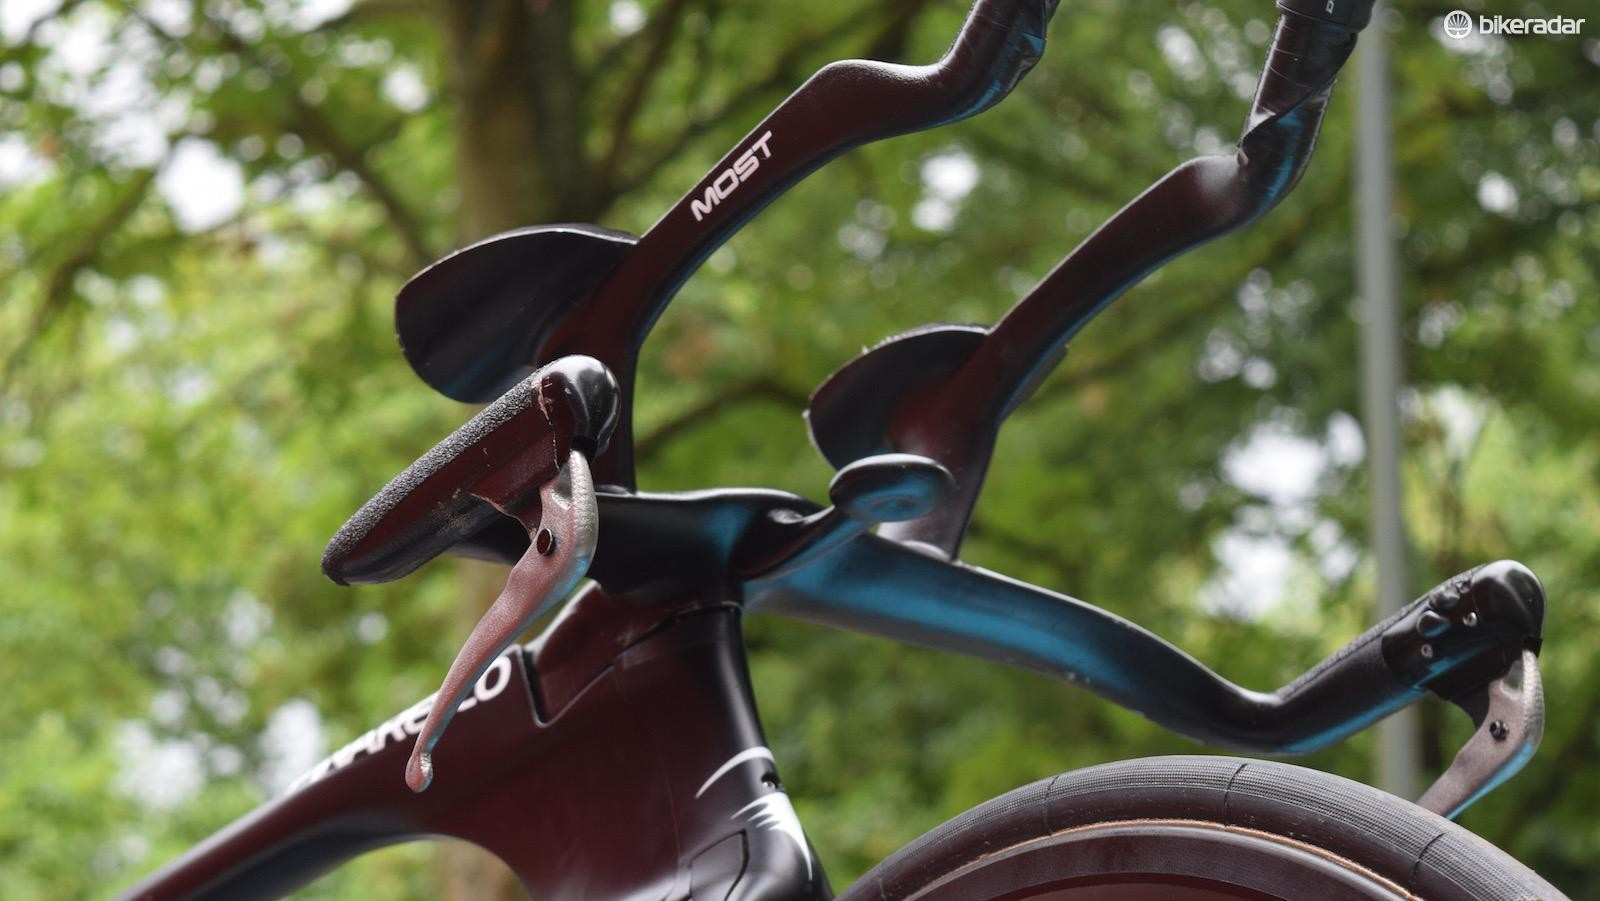 There were rumours of Geraint Thomas and Chris Froome running 3D-printed titanium cockpits